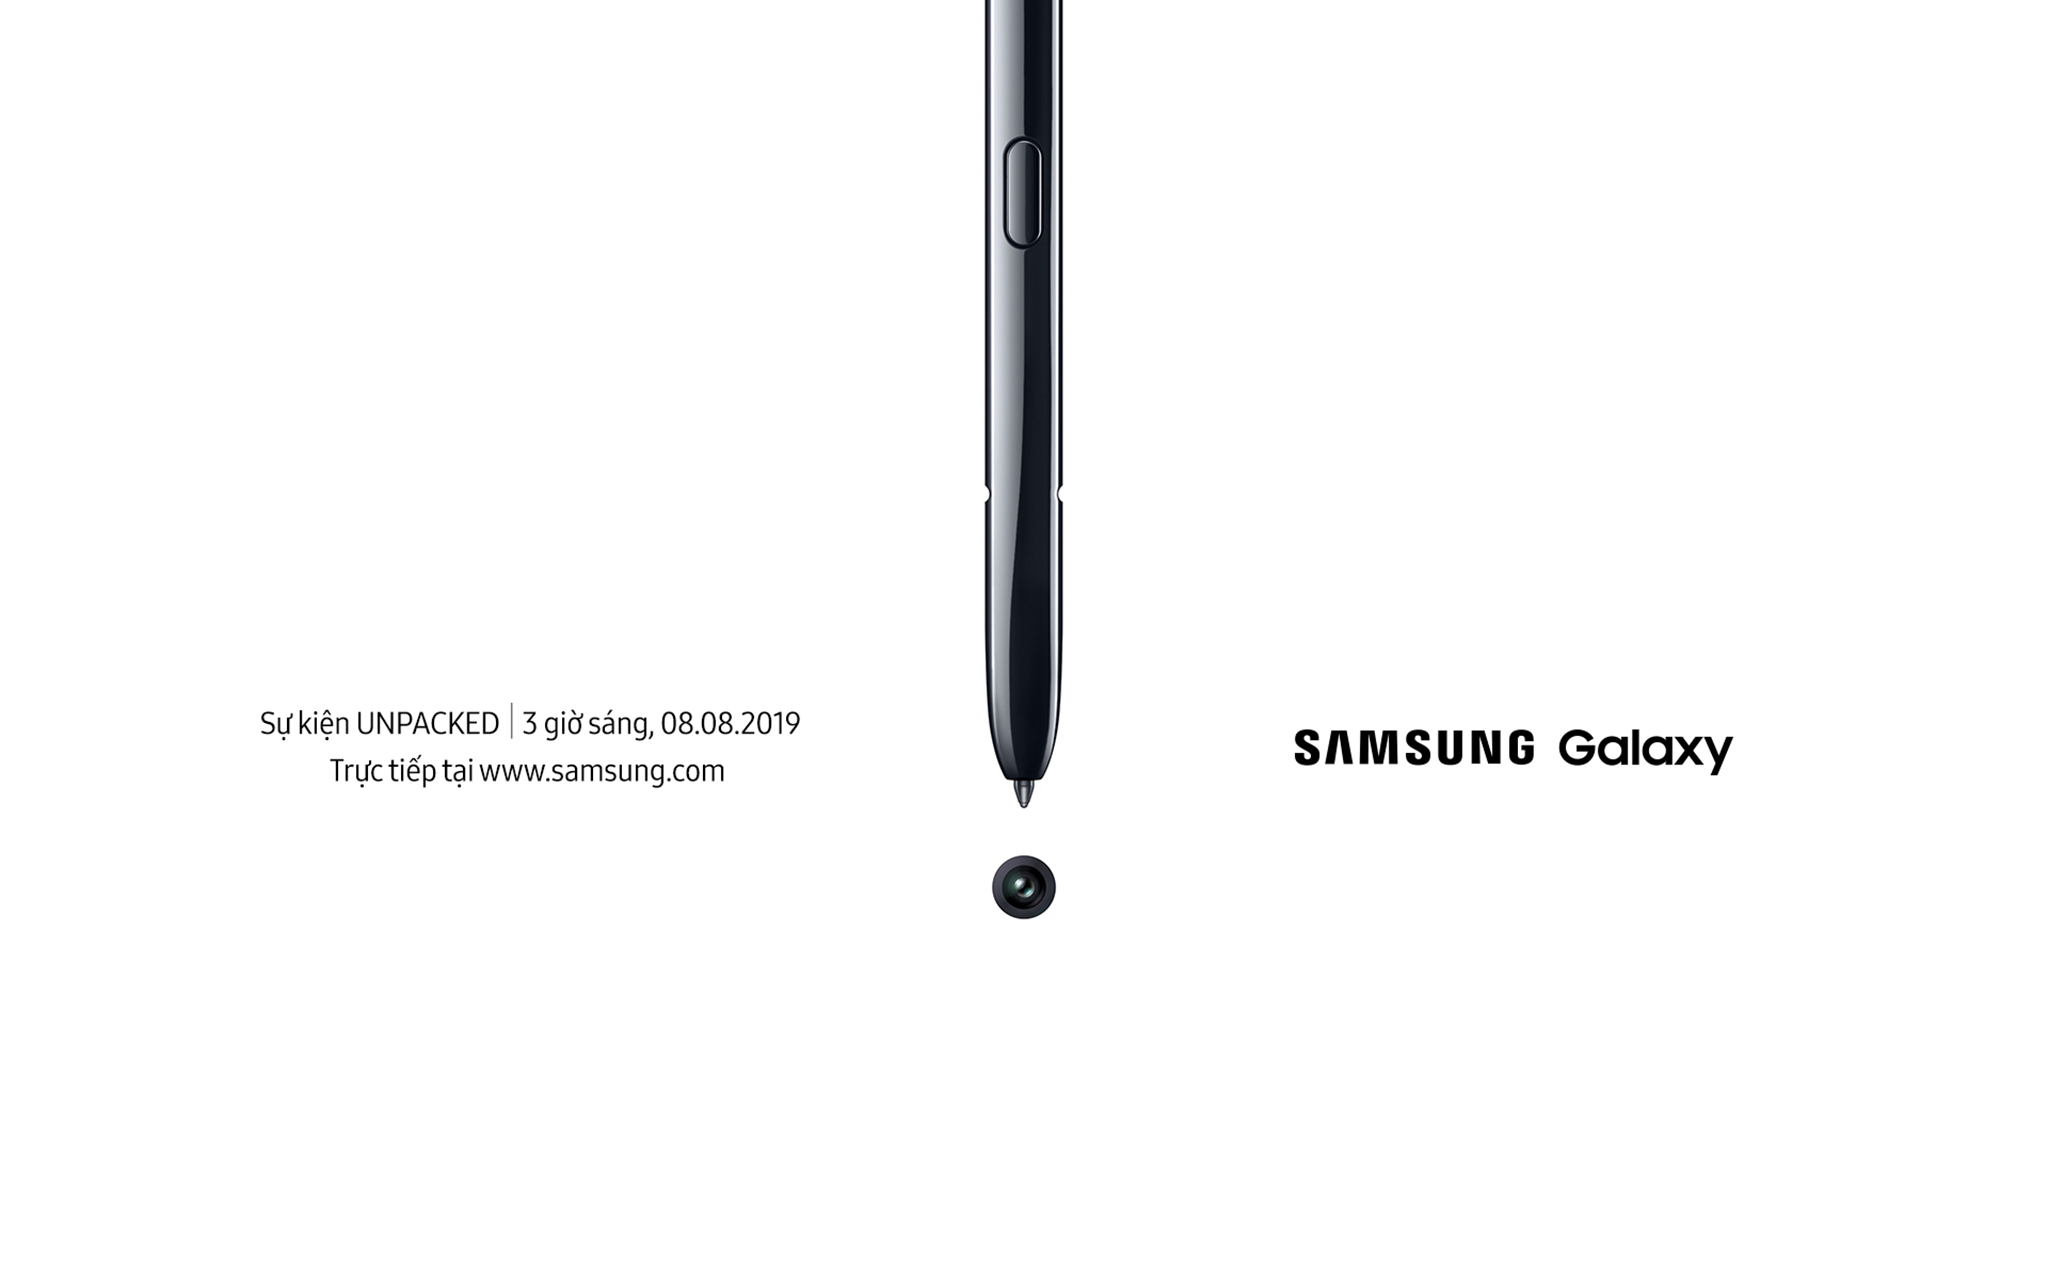 Sforum - Latest technology information page 4711646_cover-galaxyunpacked Official: UNPACKED Galaxy Note 10 event will take place at 3 am on August 8, Vietnam time